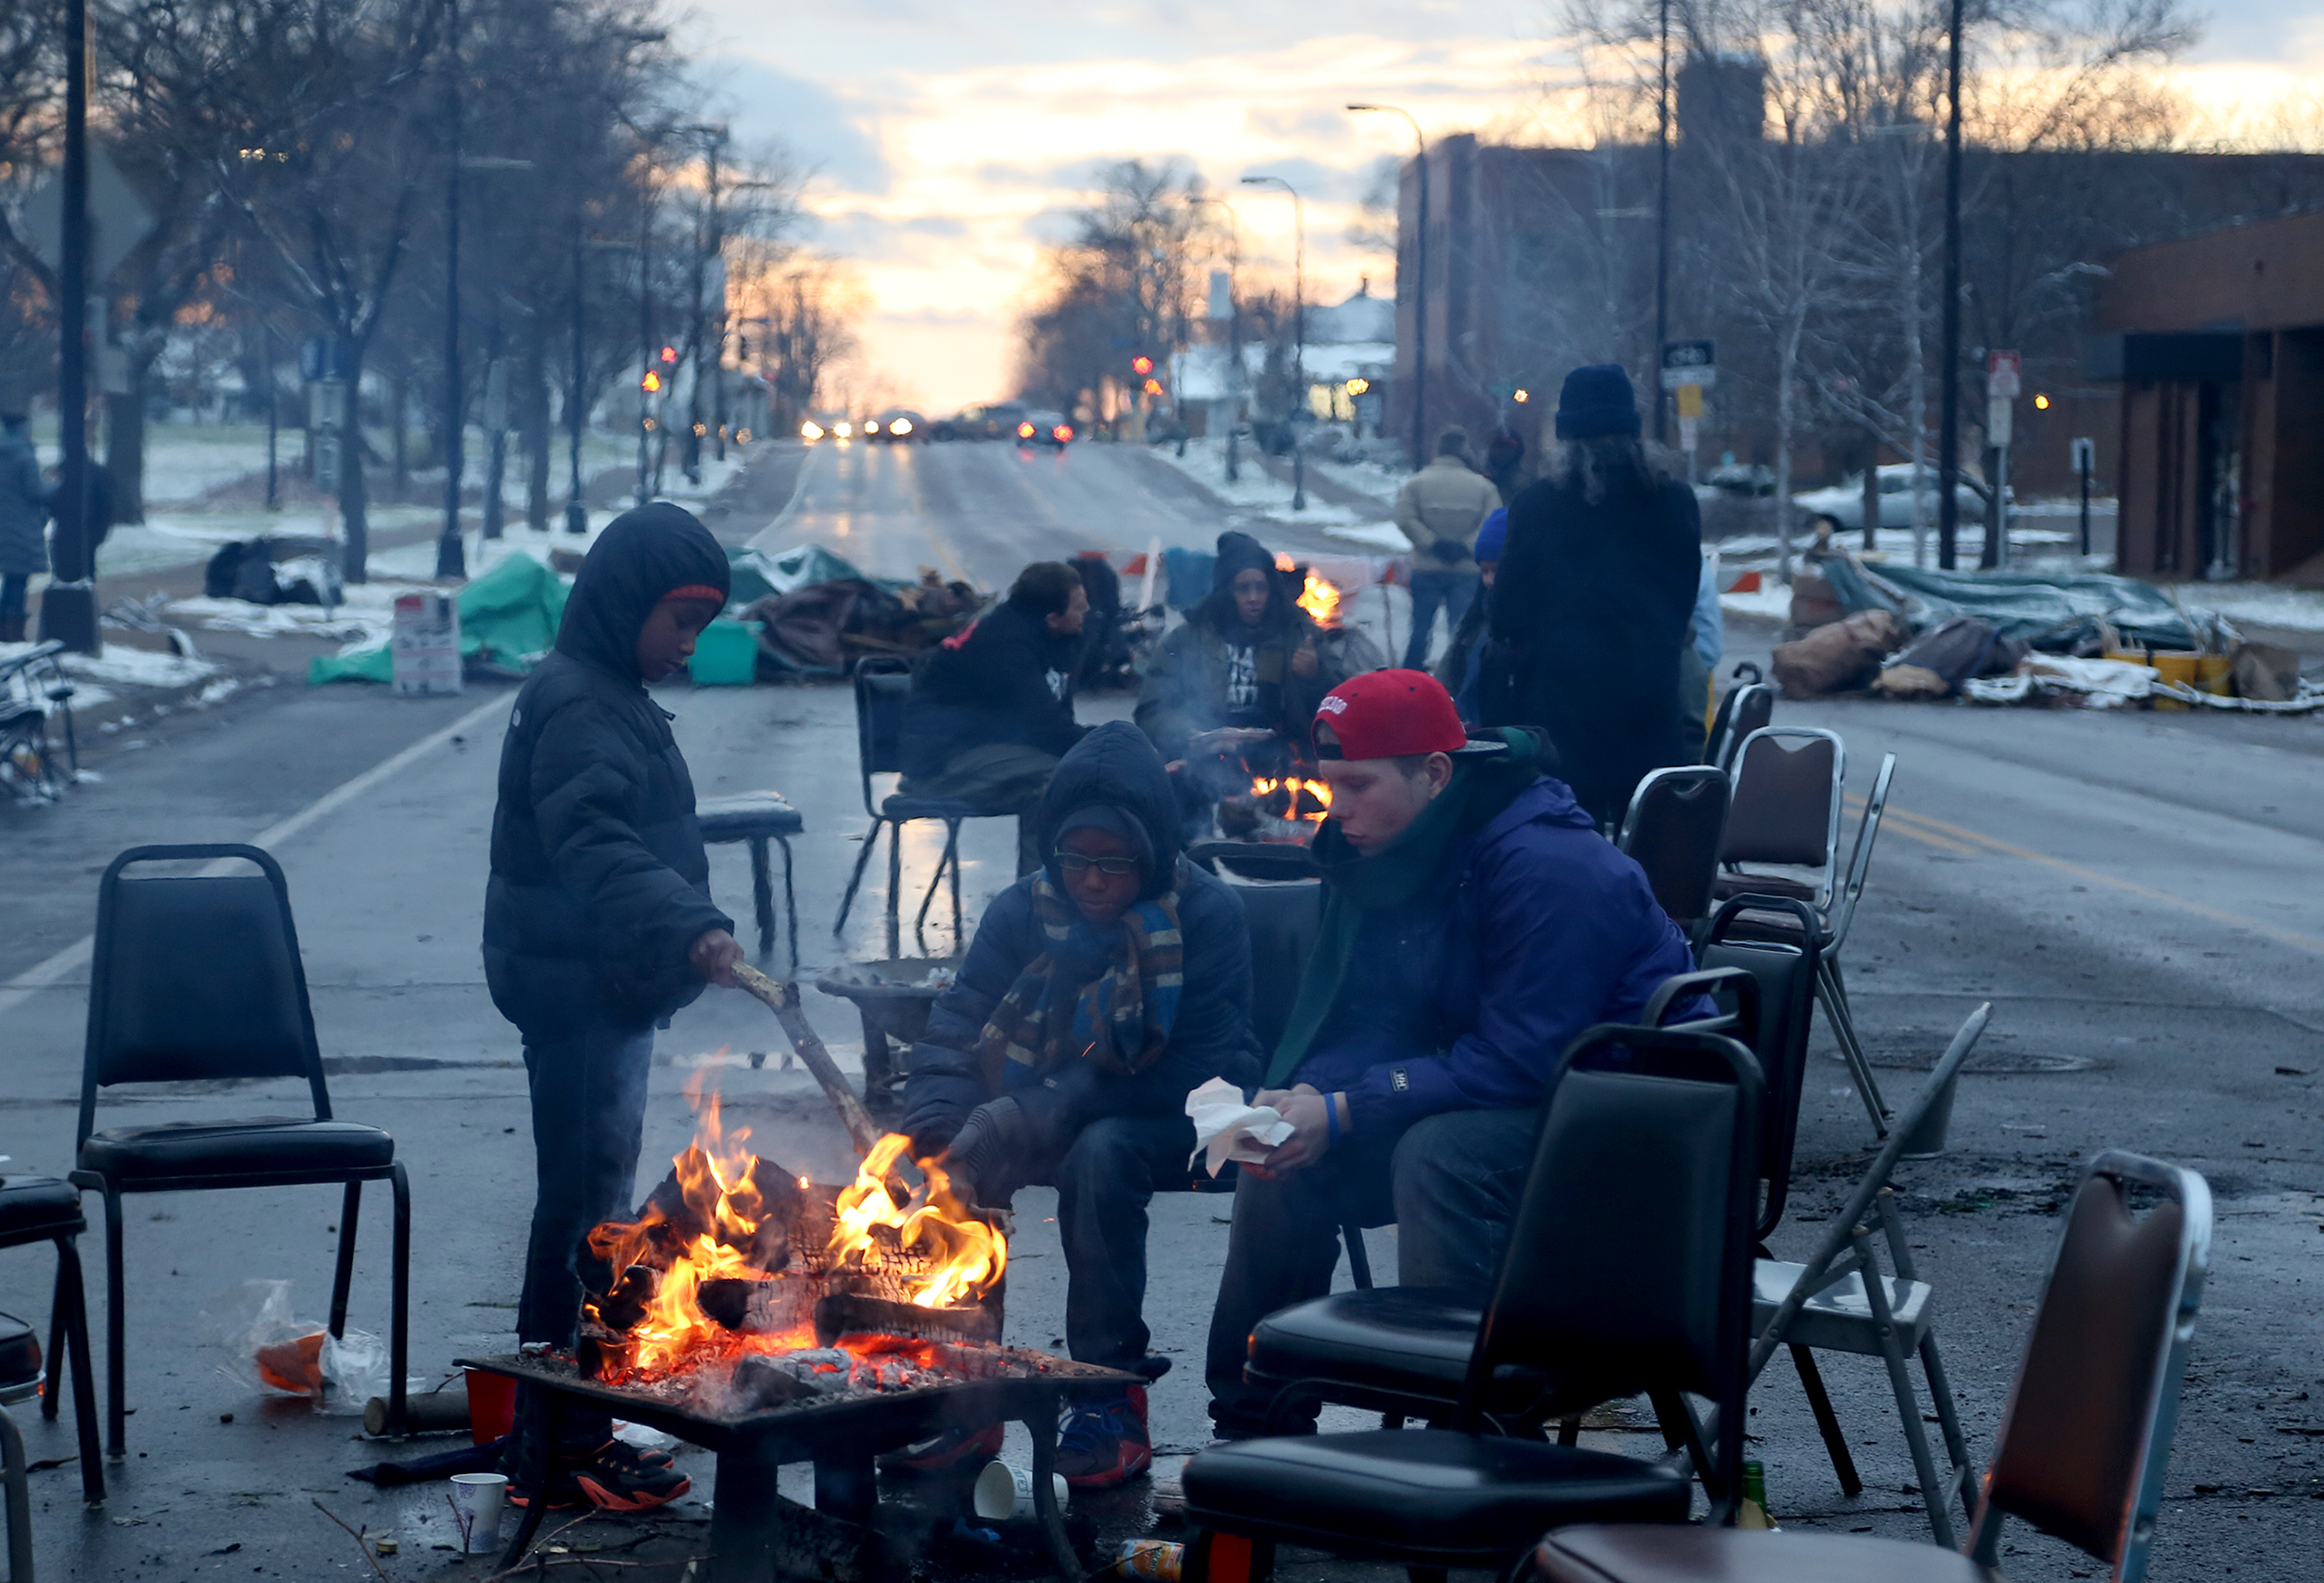 Community members and protesters warmed themselves by the fire during BlackGiving event in front of the Minneapolis Fourth Precinct. ] (KYNDELL HARKNESS/STAR TRIBUNE) kyndell.harkness@startribune.com BlackGiving event on Plymouth Ave in front of the Minneapolis Fourth Precinct in Minneapolis Min., Thursday November 26, 2015.